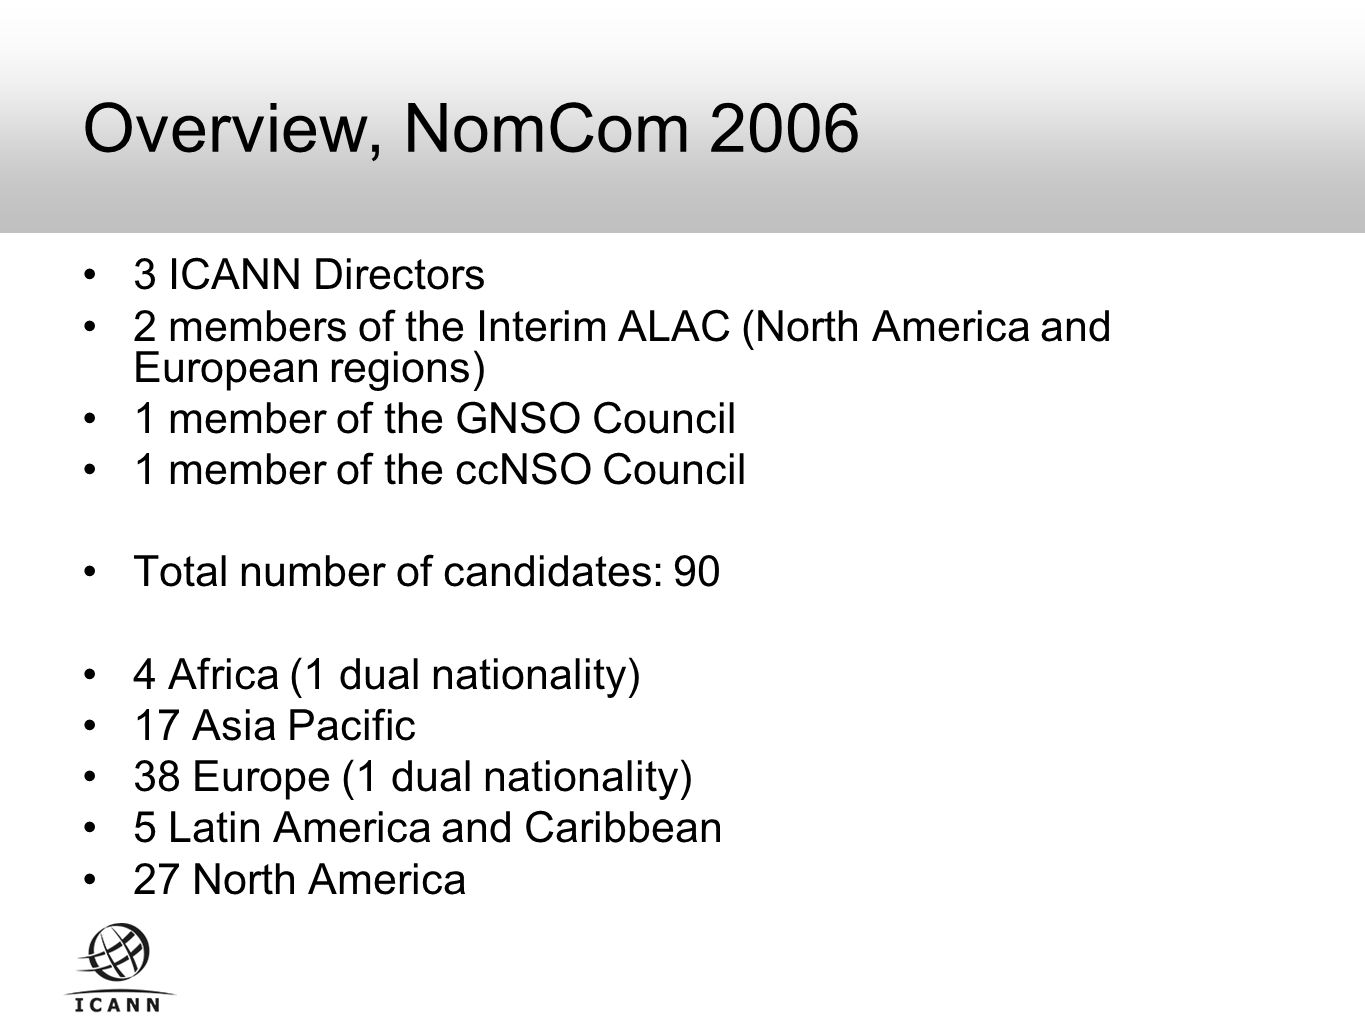 Overview, NomCom ICANN Directors 2 members of the Interim ALAC (North America and European regions) 1 member of the GNSO Council 1 member of the ccNSO Council Total number of candidates: 90 4 Africa (1 dual nationality) 17 Asia Pacific 38 Europe (1 dual nationality) 5 Latin America and Caribbean 27 North America